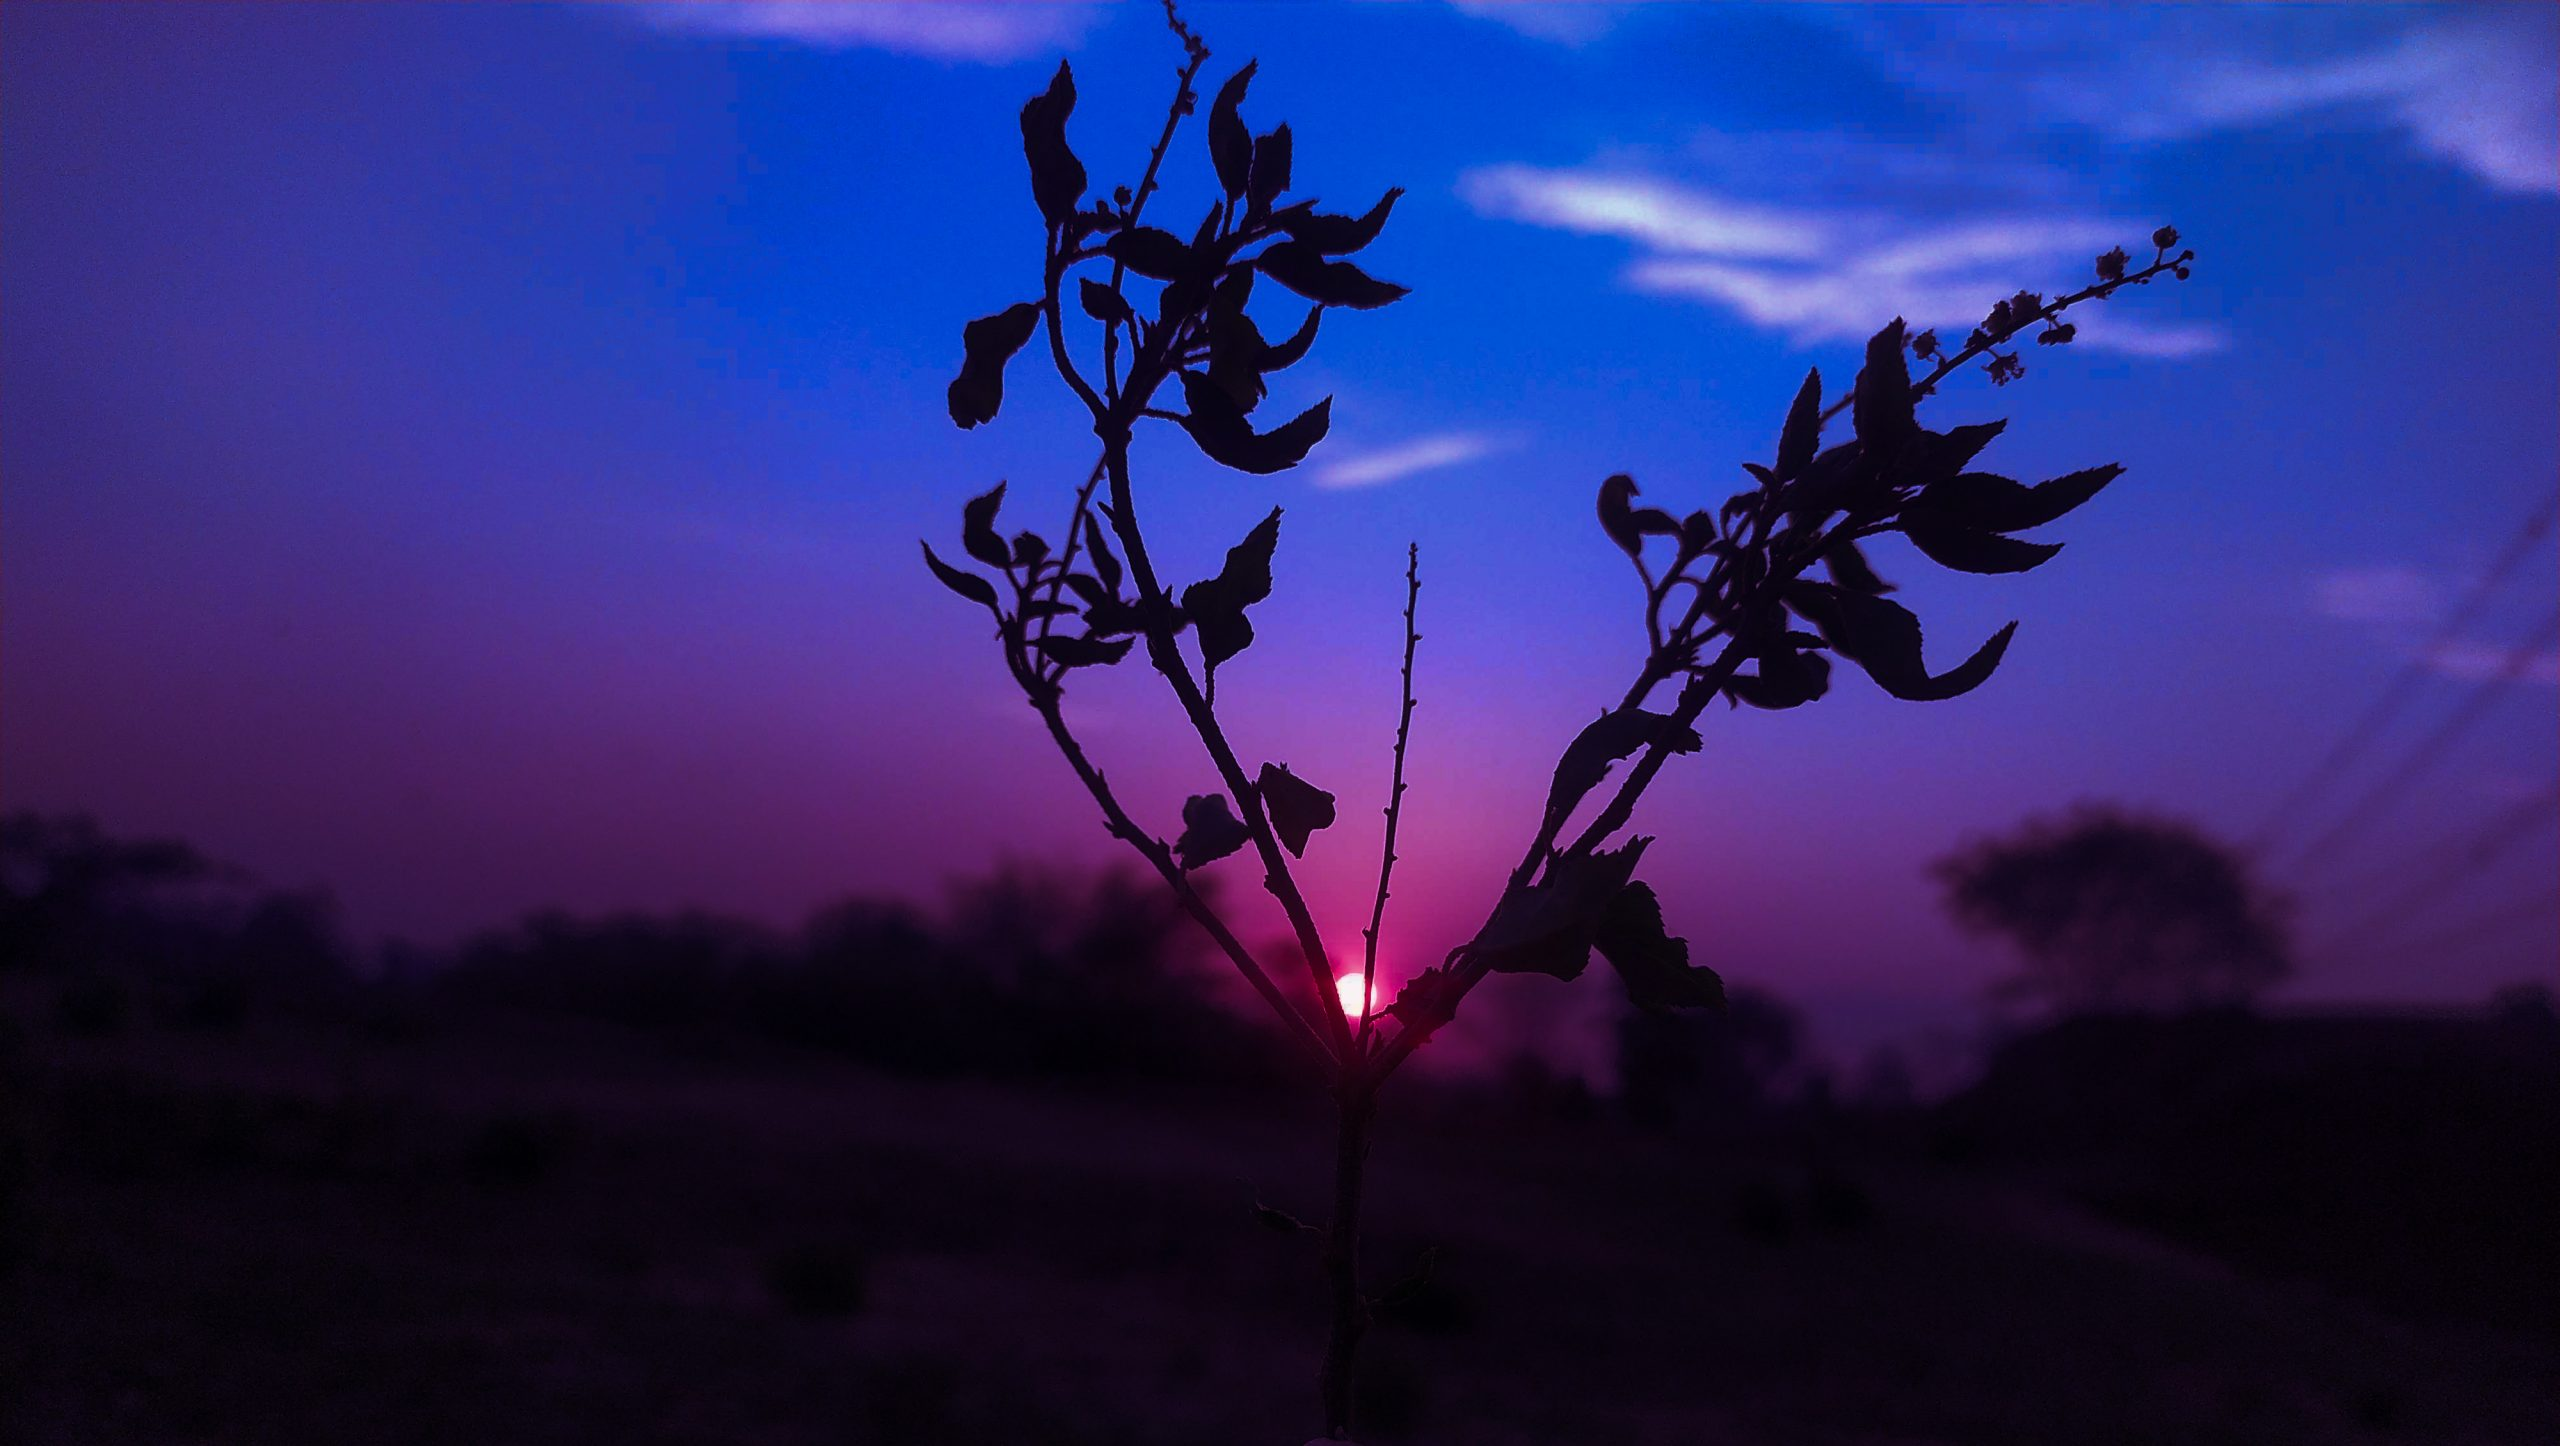 Sunset view through a plant